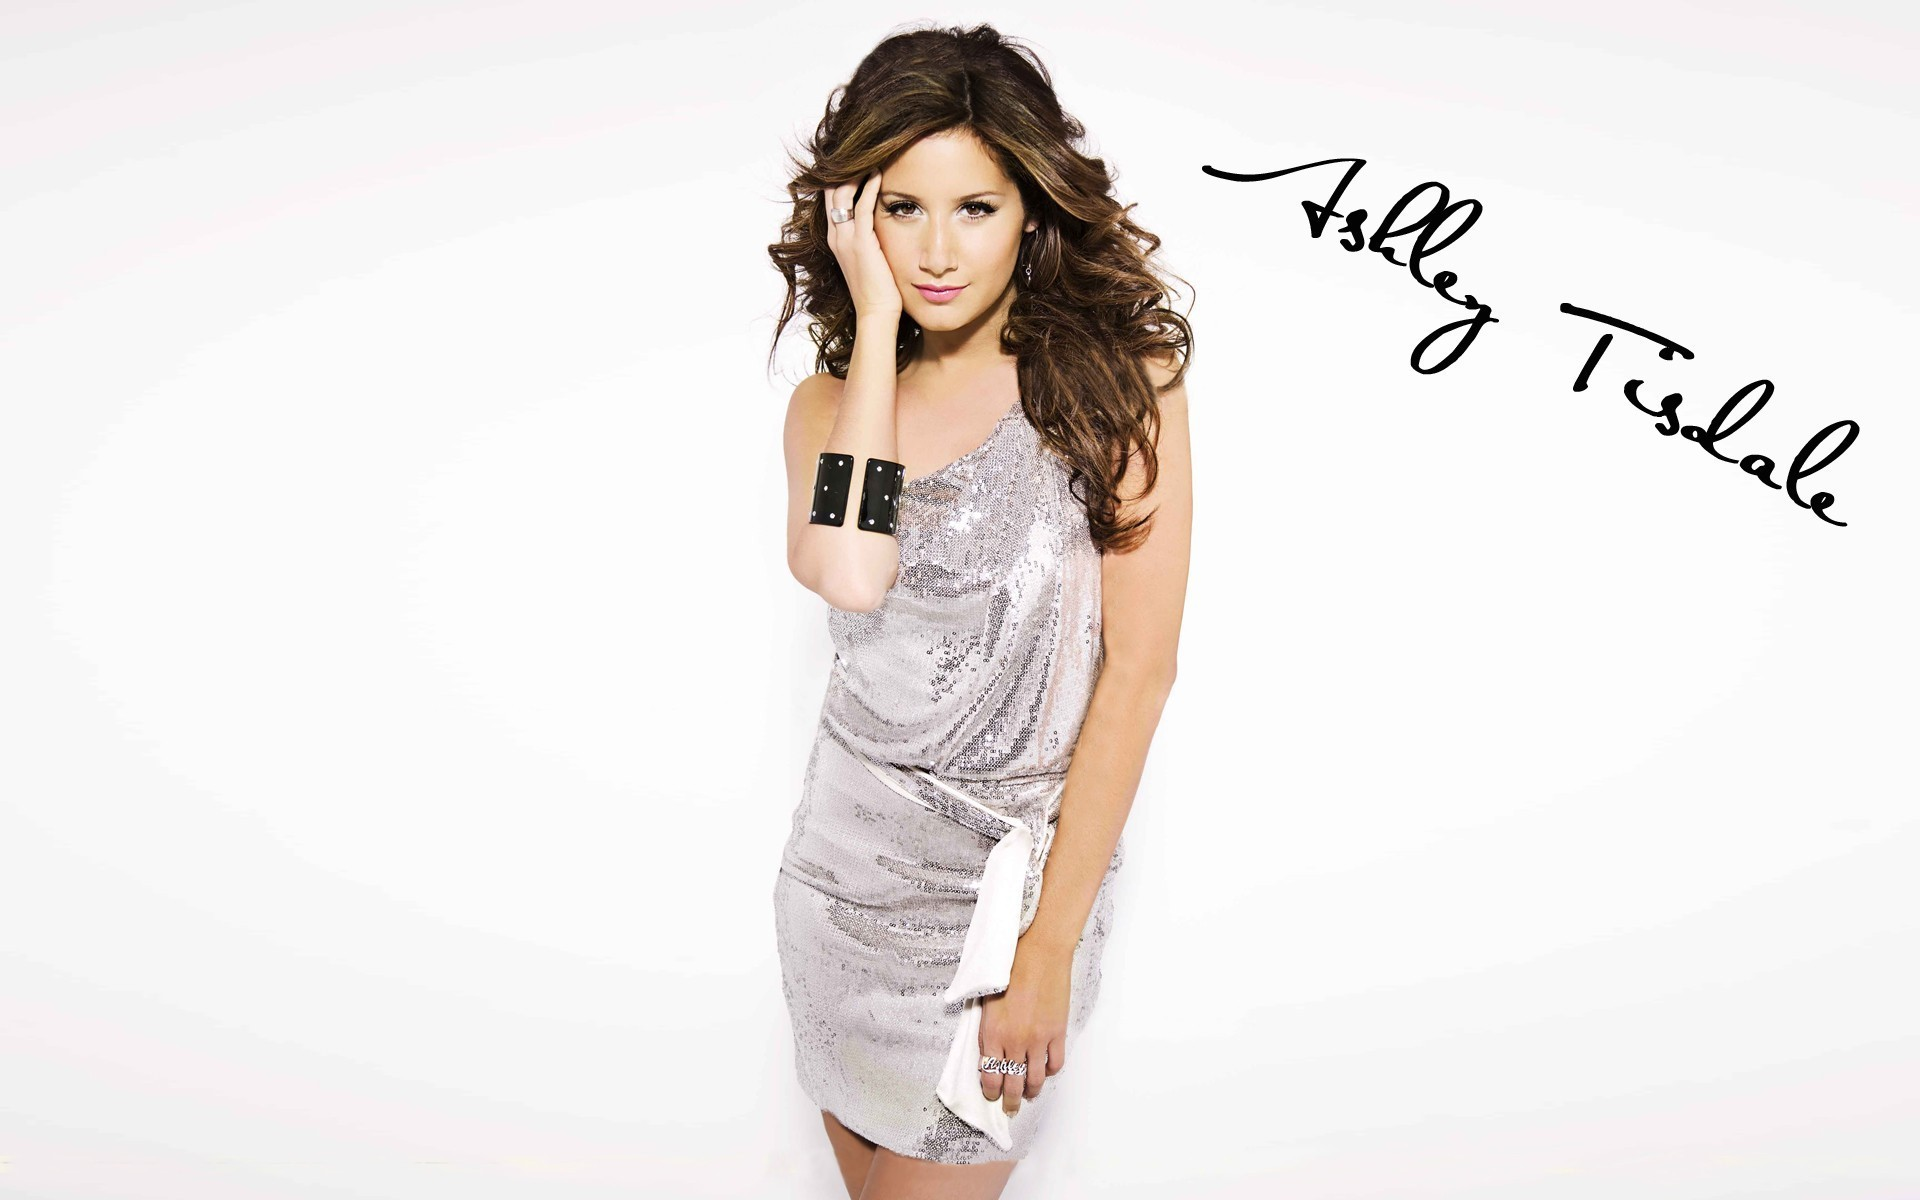 Pictures of Ashley Tisdale